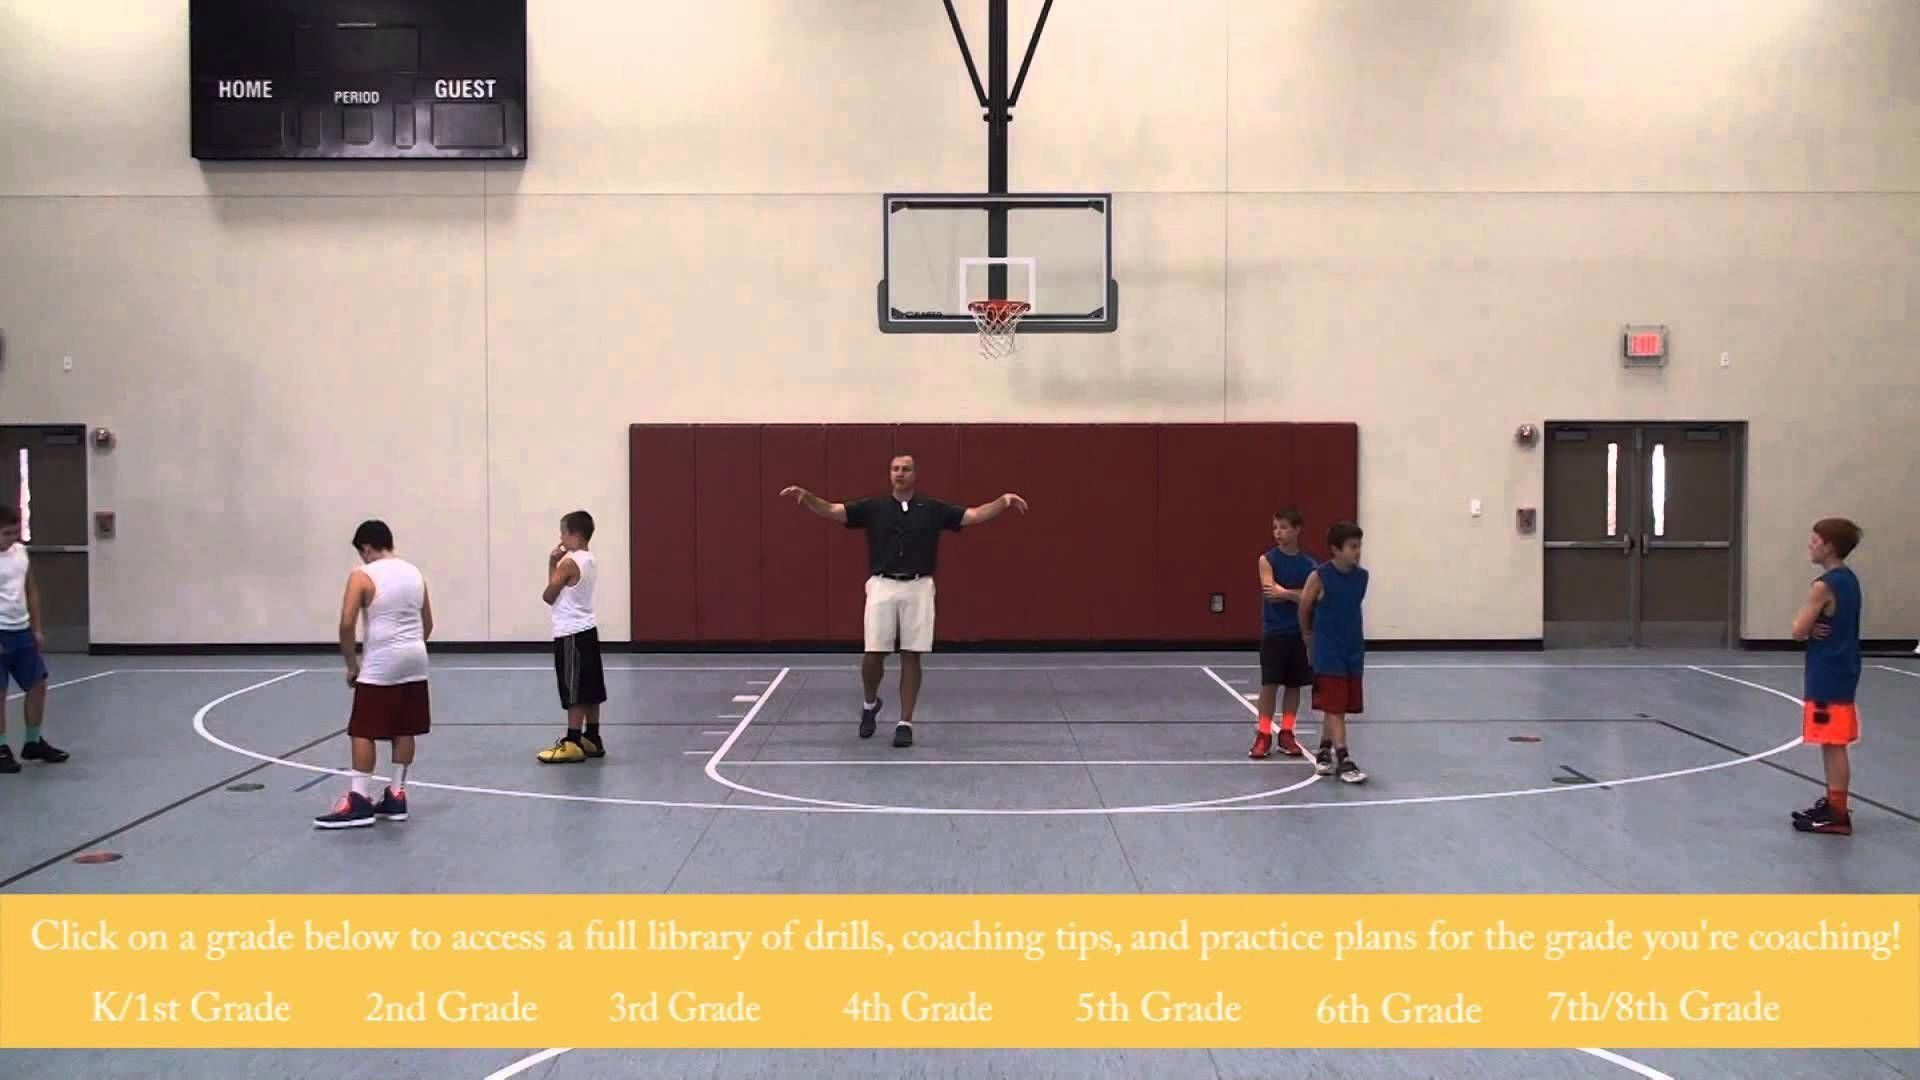 Youth Basketball Shooting Drill And Game For 2nd 3rd 4th 5th Grades Validation Basketballg Basketball Shooting Drills Youth Basketball Basketball Drills